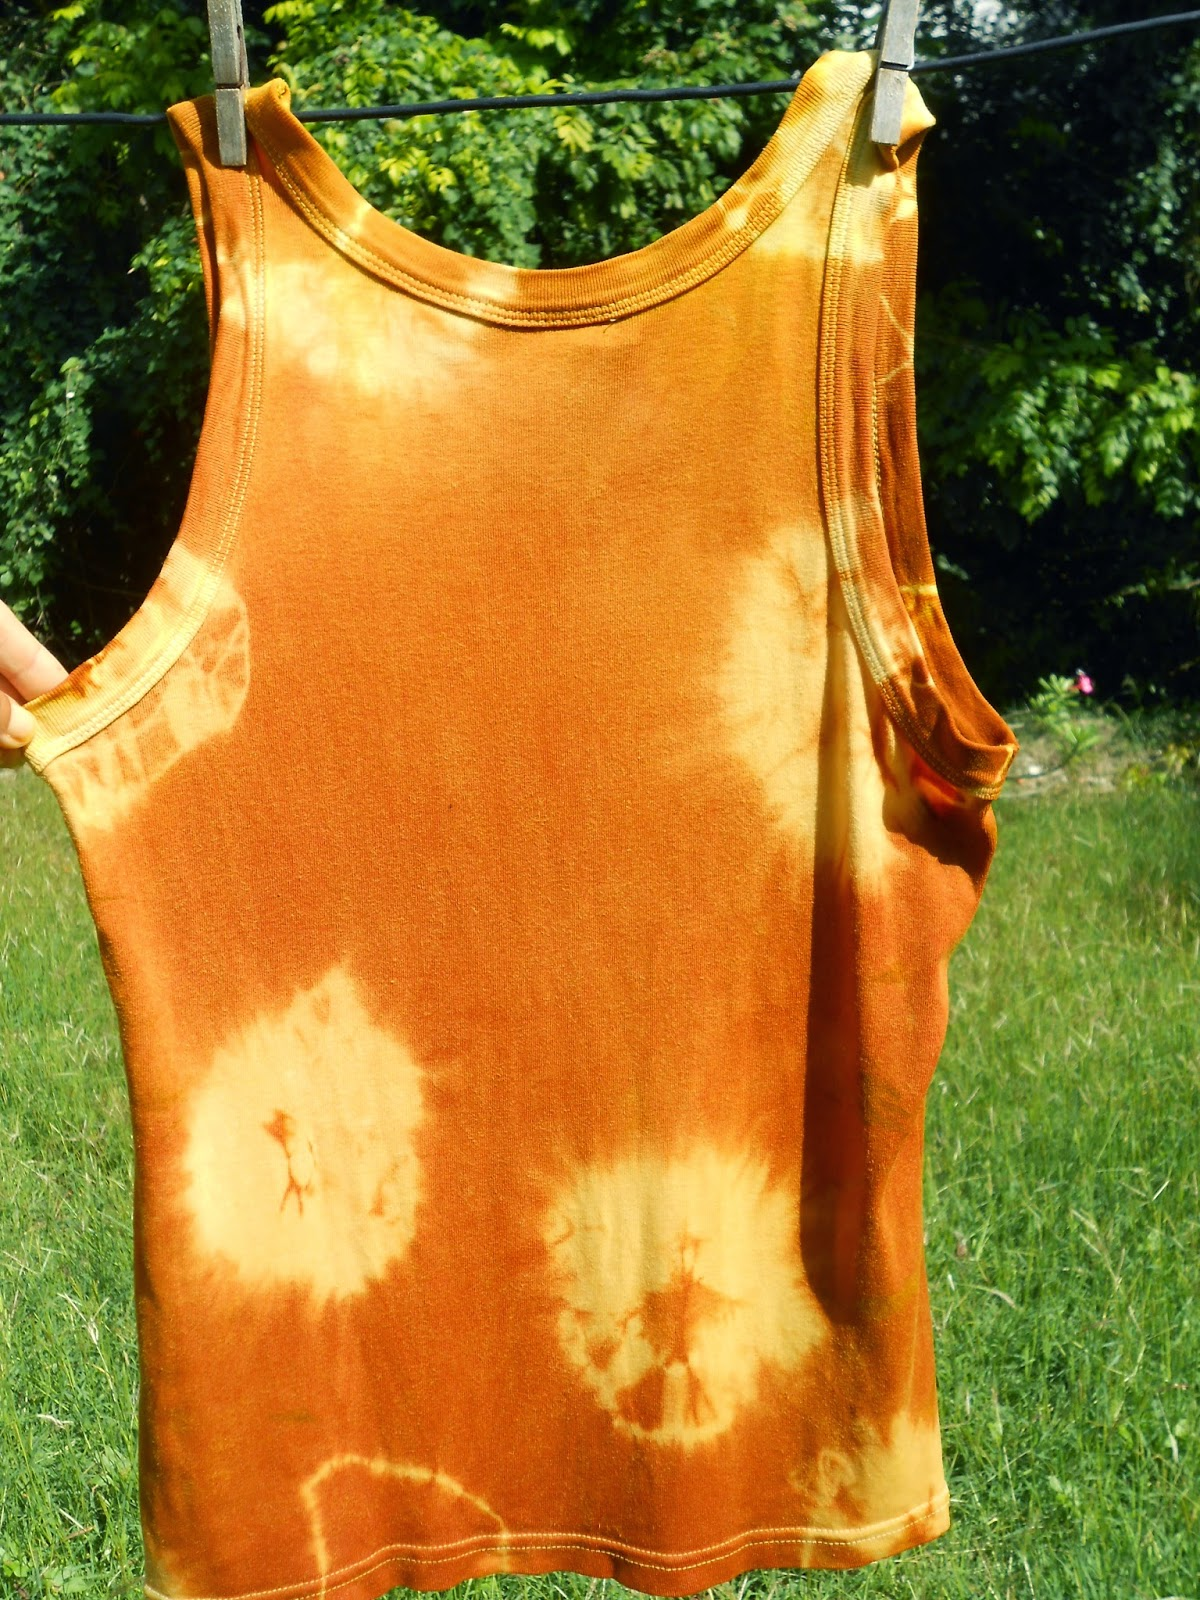 tie dye with natural fabric dye from fresh turmeric root naturopathic control